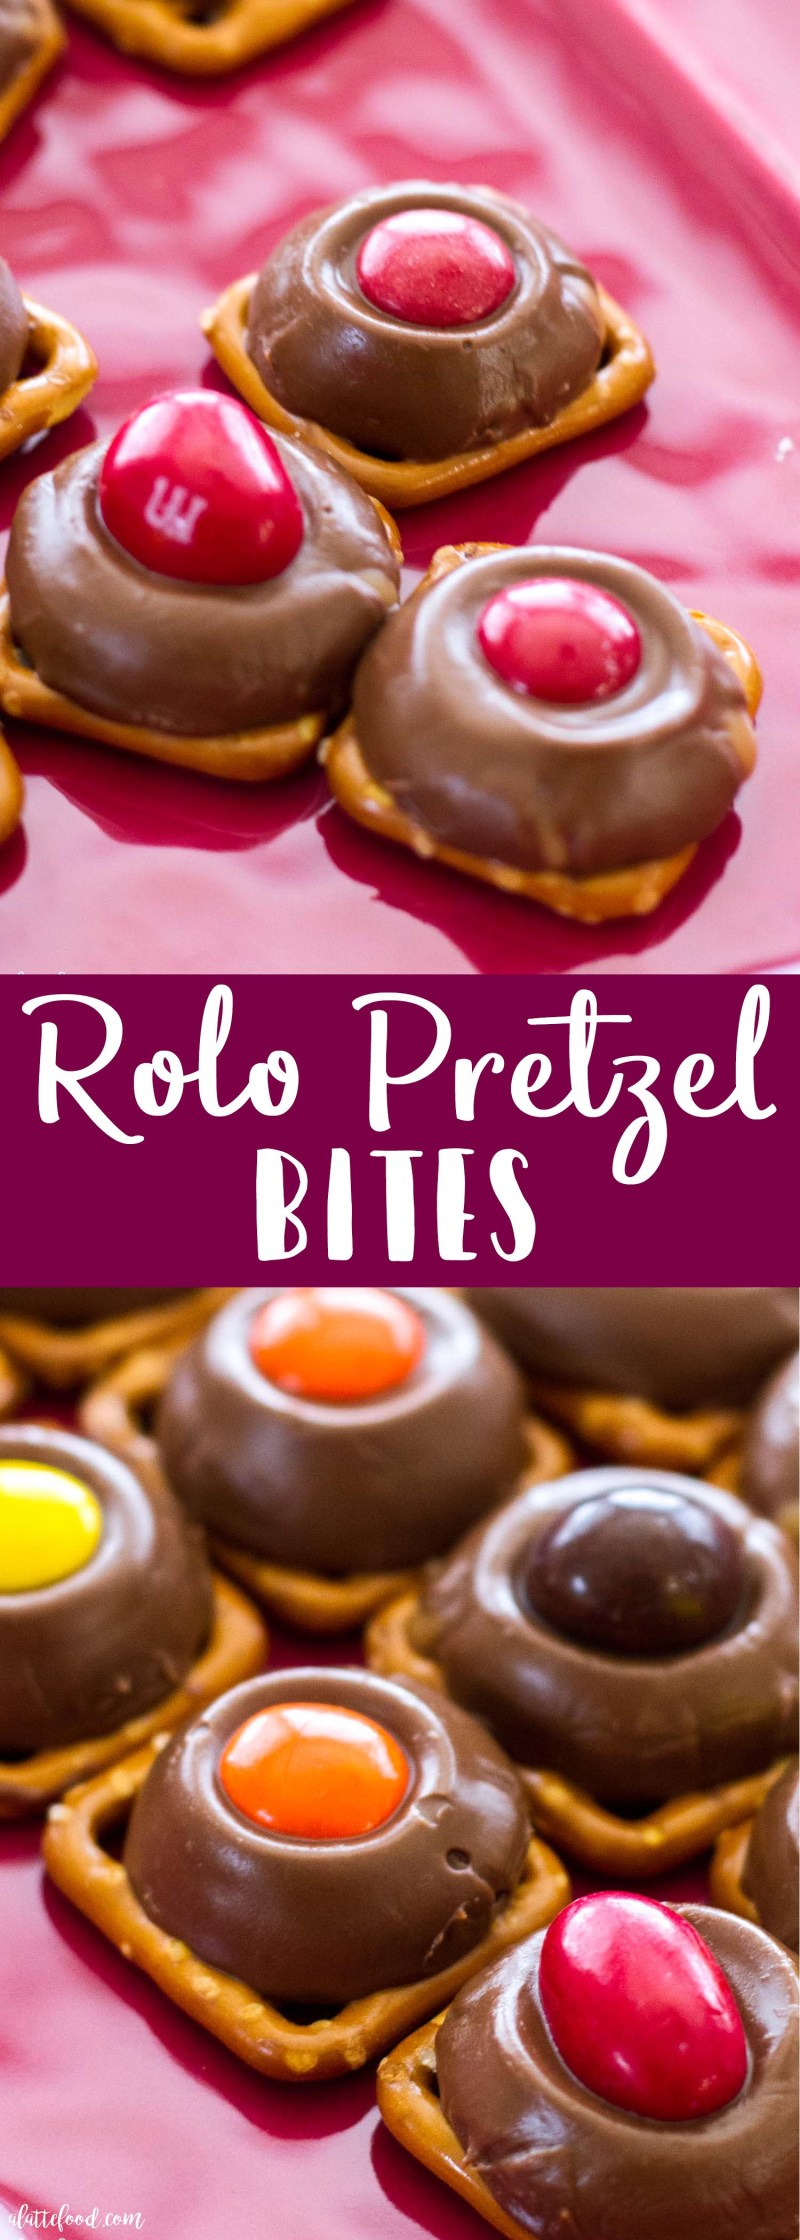 This super easy dessert recipe only takes 5-minutes to make! Rolos are baked on pretzels and topped with m&ms. They are sweet, simple, and completely addictive!